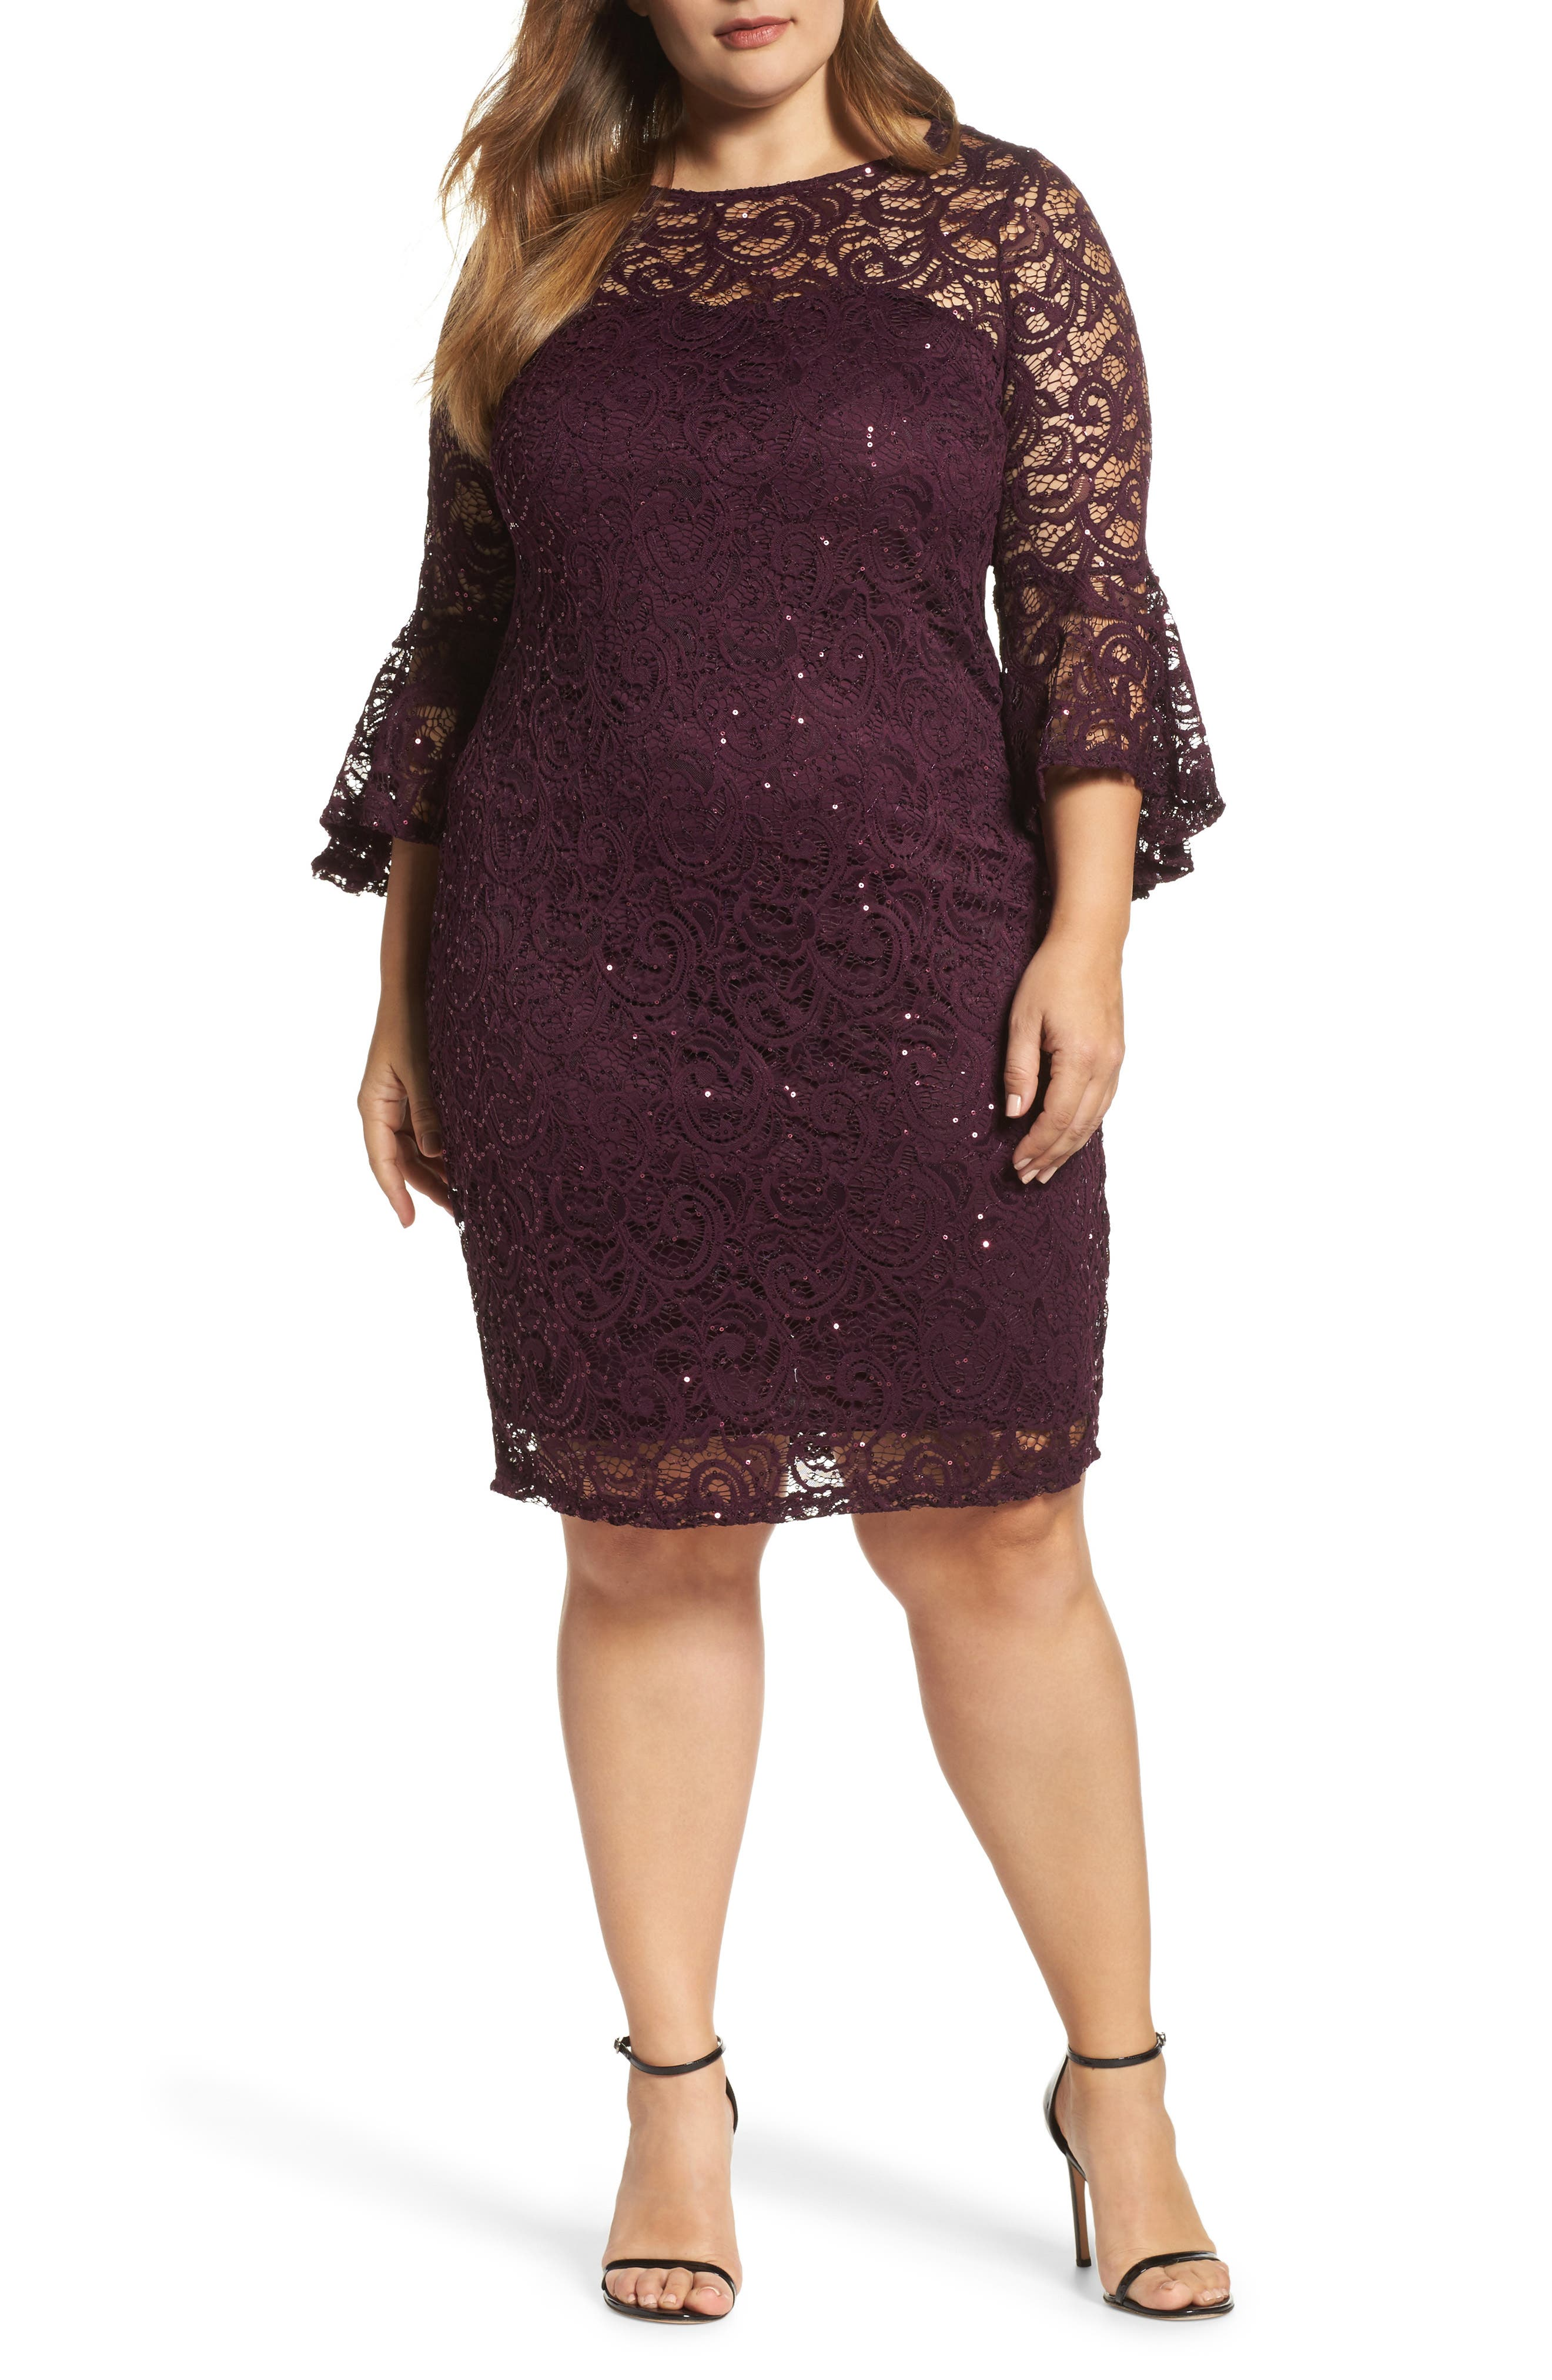 Alternate Image 1 Selected - Marina Sequin Lace Bell Sleeve Dress (Plus Size)